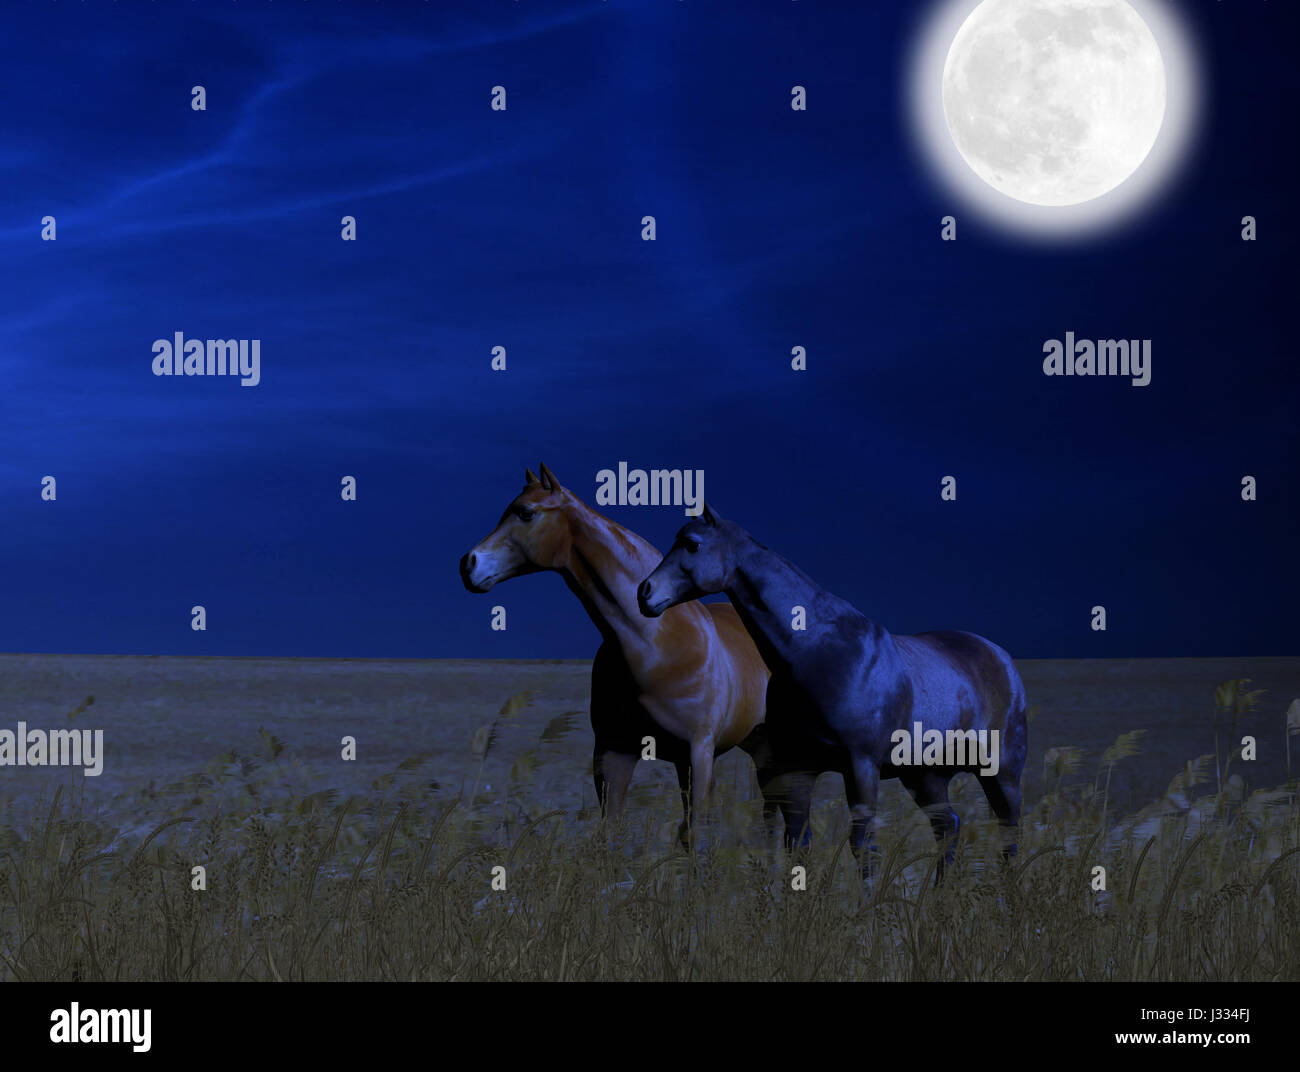 3D painting of beautiful horses standing in a wheat field at midnight under a full moon. - Stock Image